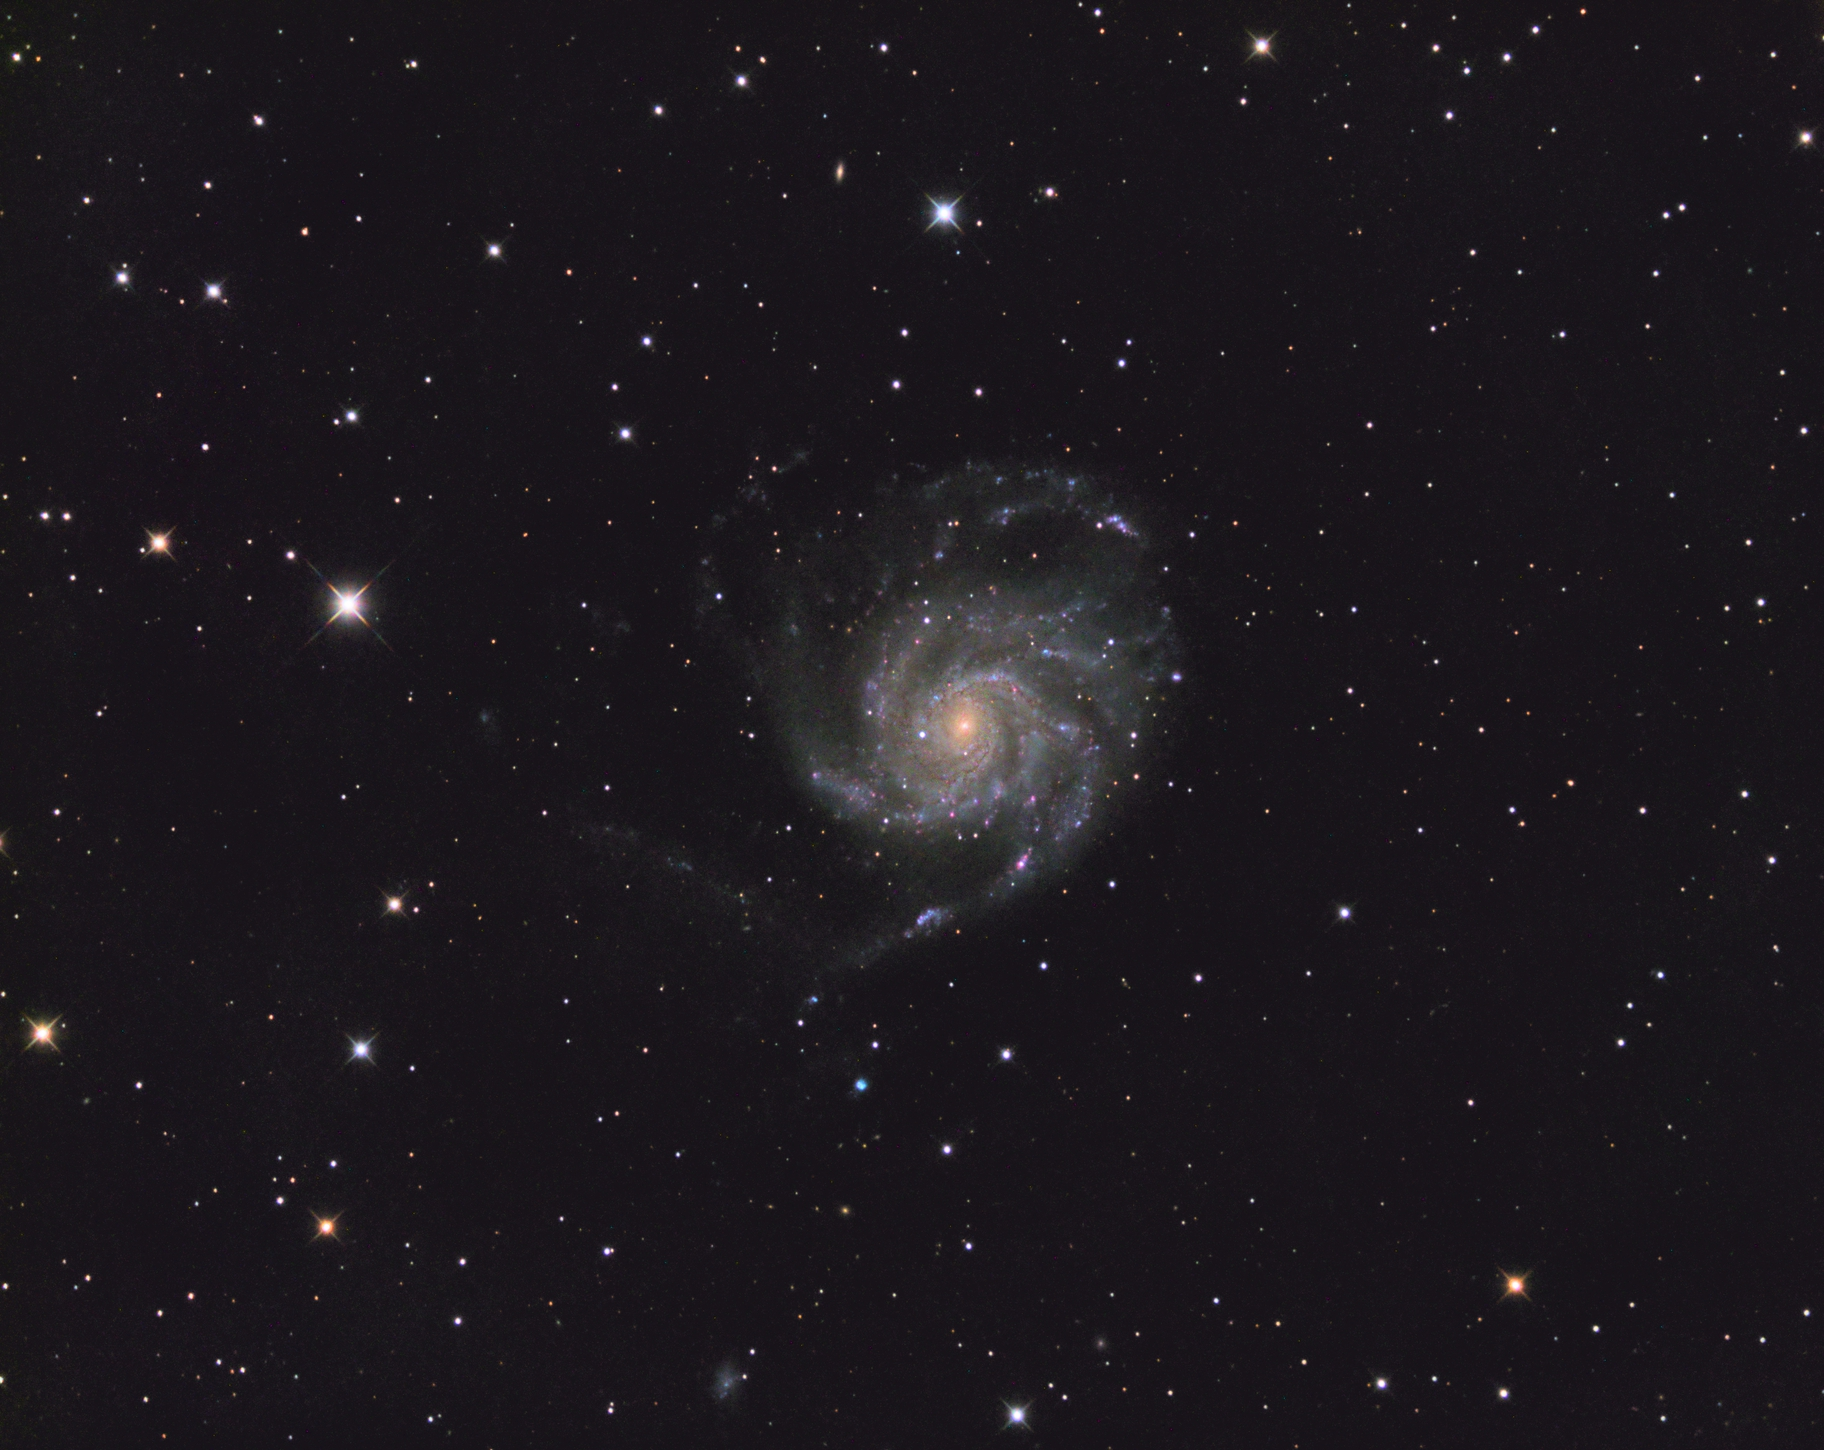 My original capture of M101 on the ZWO ASI1600MM-C of 17.5 hours.